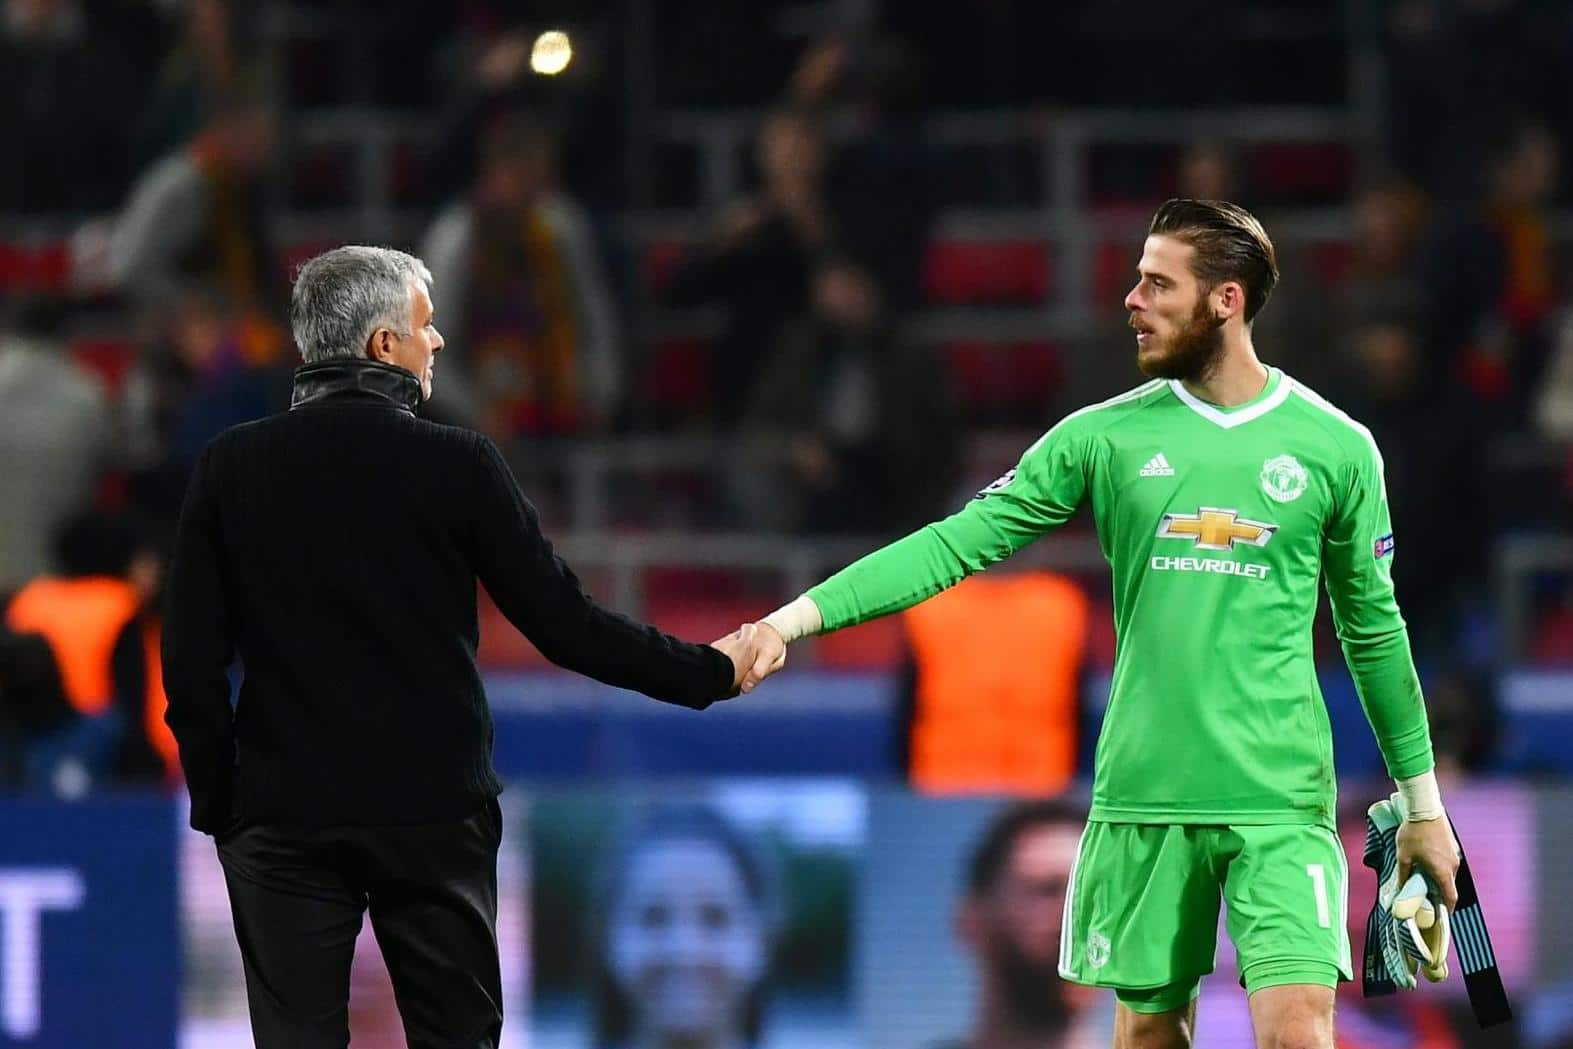 Manchester United players surprised by Mourinho's David de Gea joke!